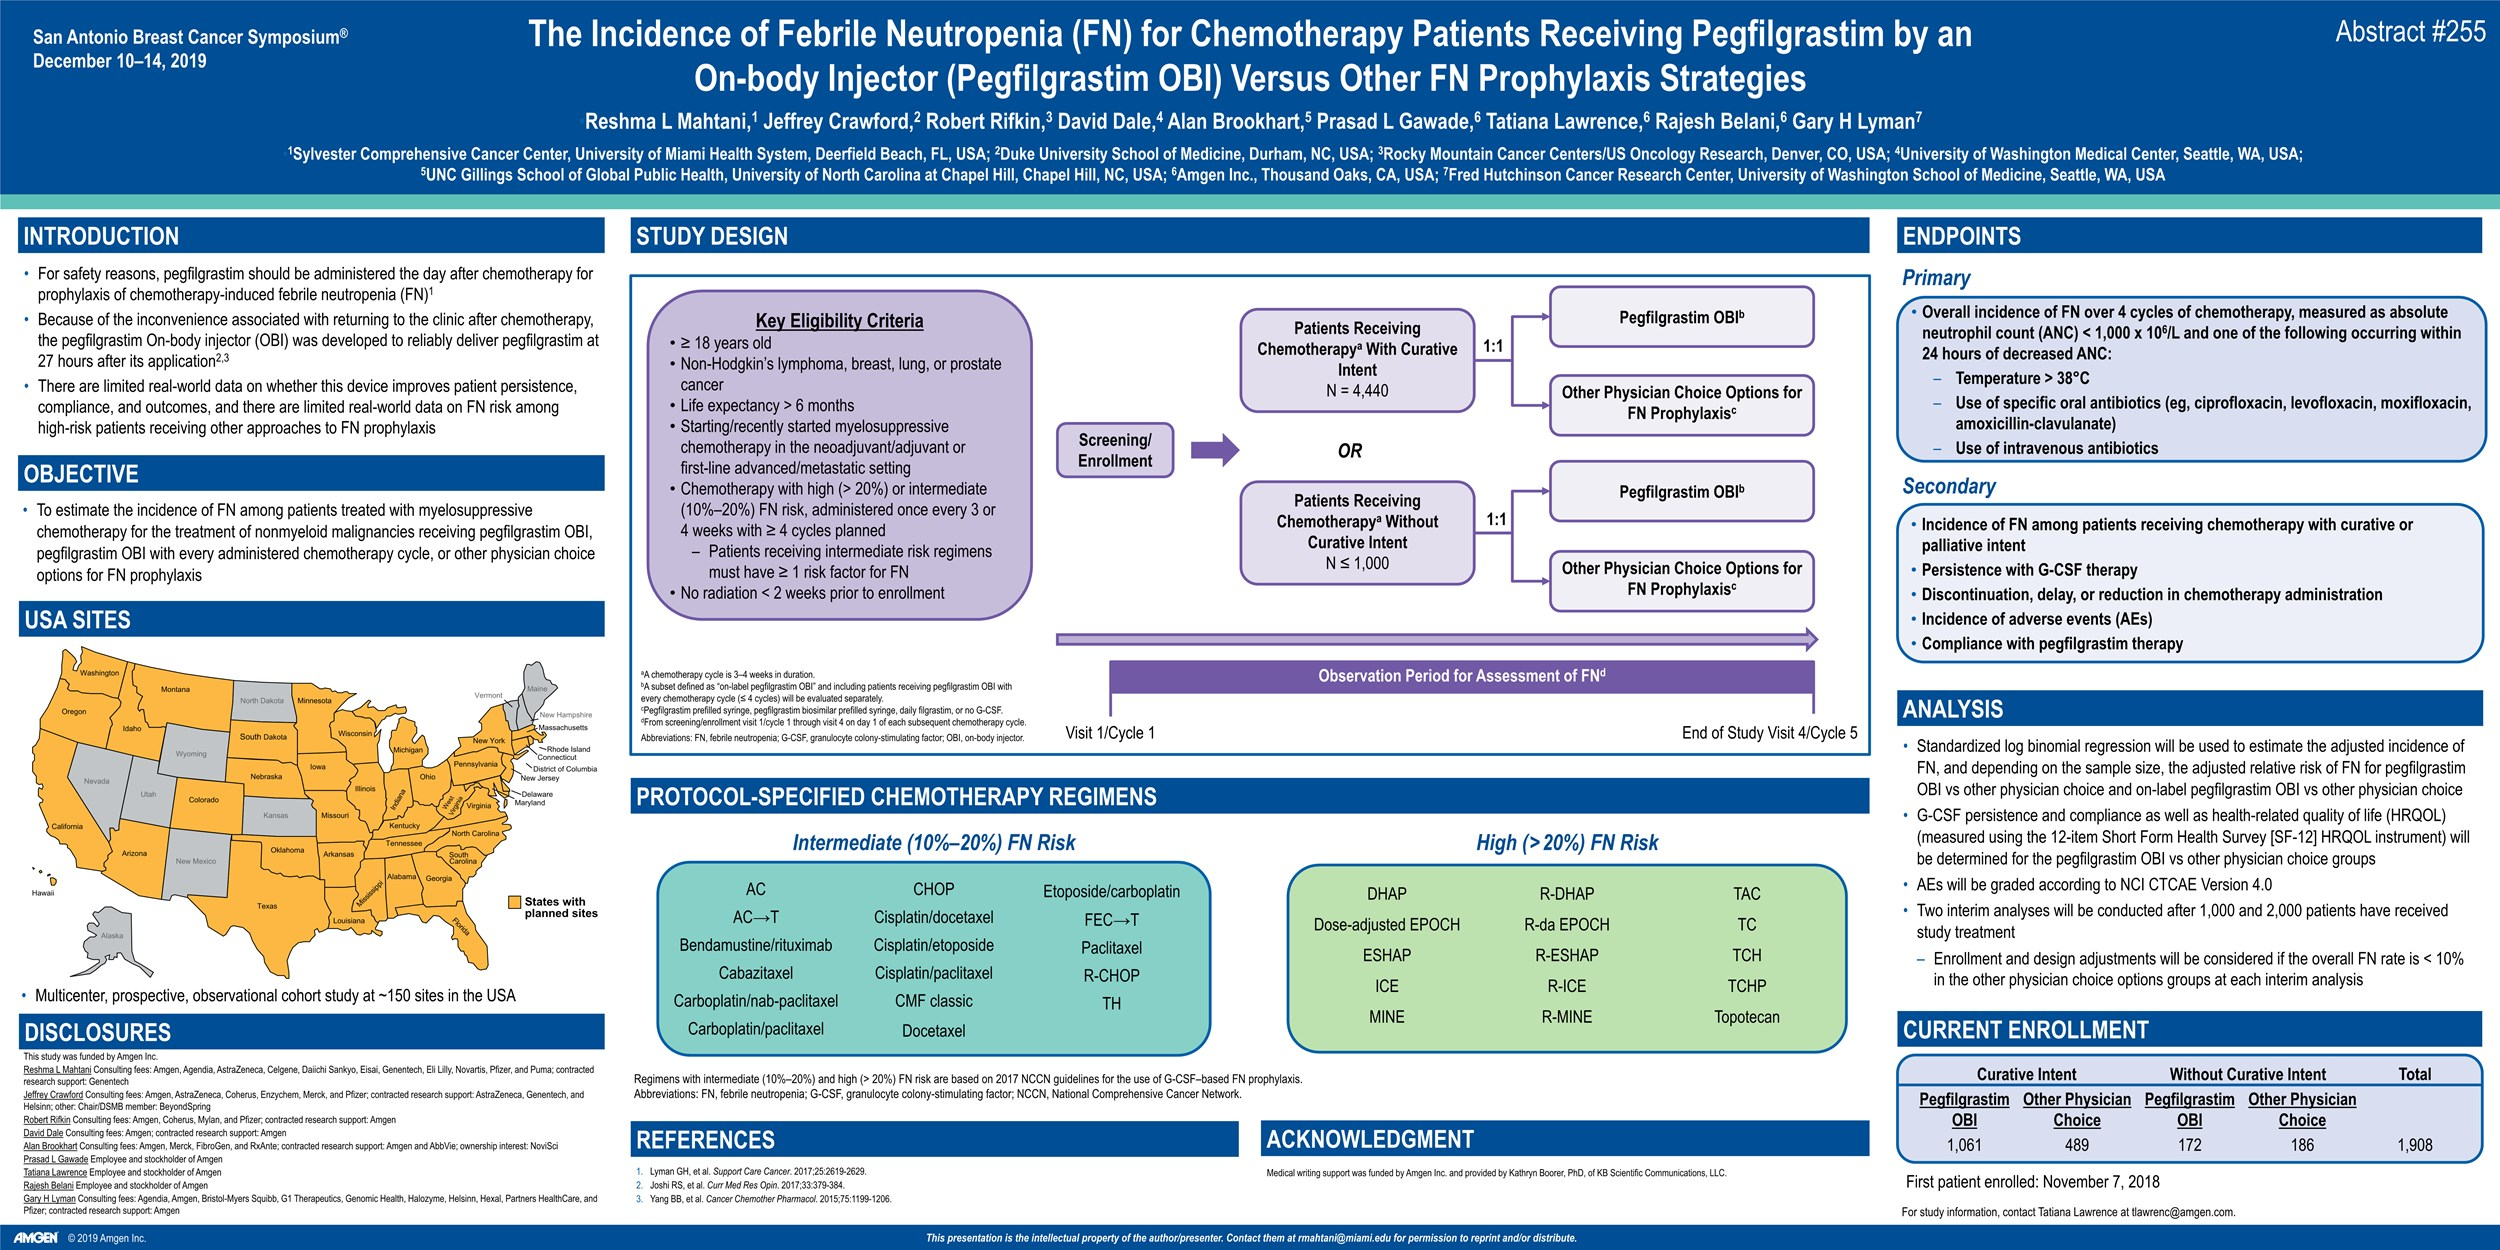 The incidence of febrile neutropenia (FN) for chemotherapy patients receiving pegfilgrastim by an on-body injector (pegfilgrastim OBI) versus other FN prophylaxis strategies